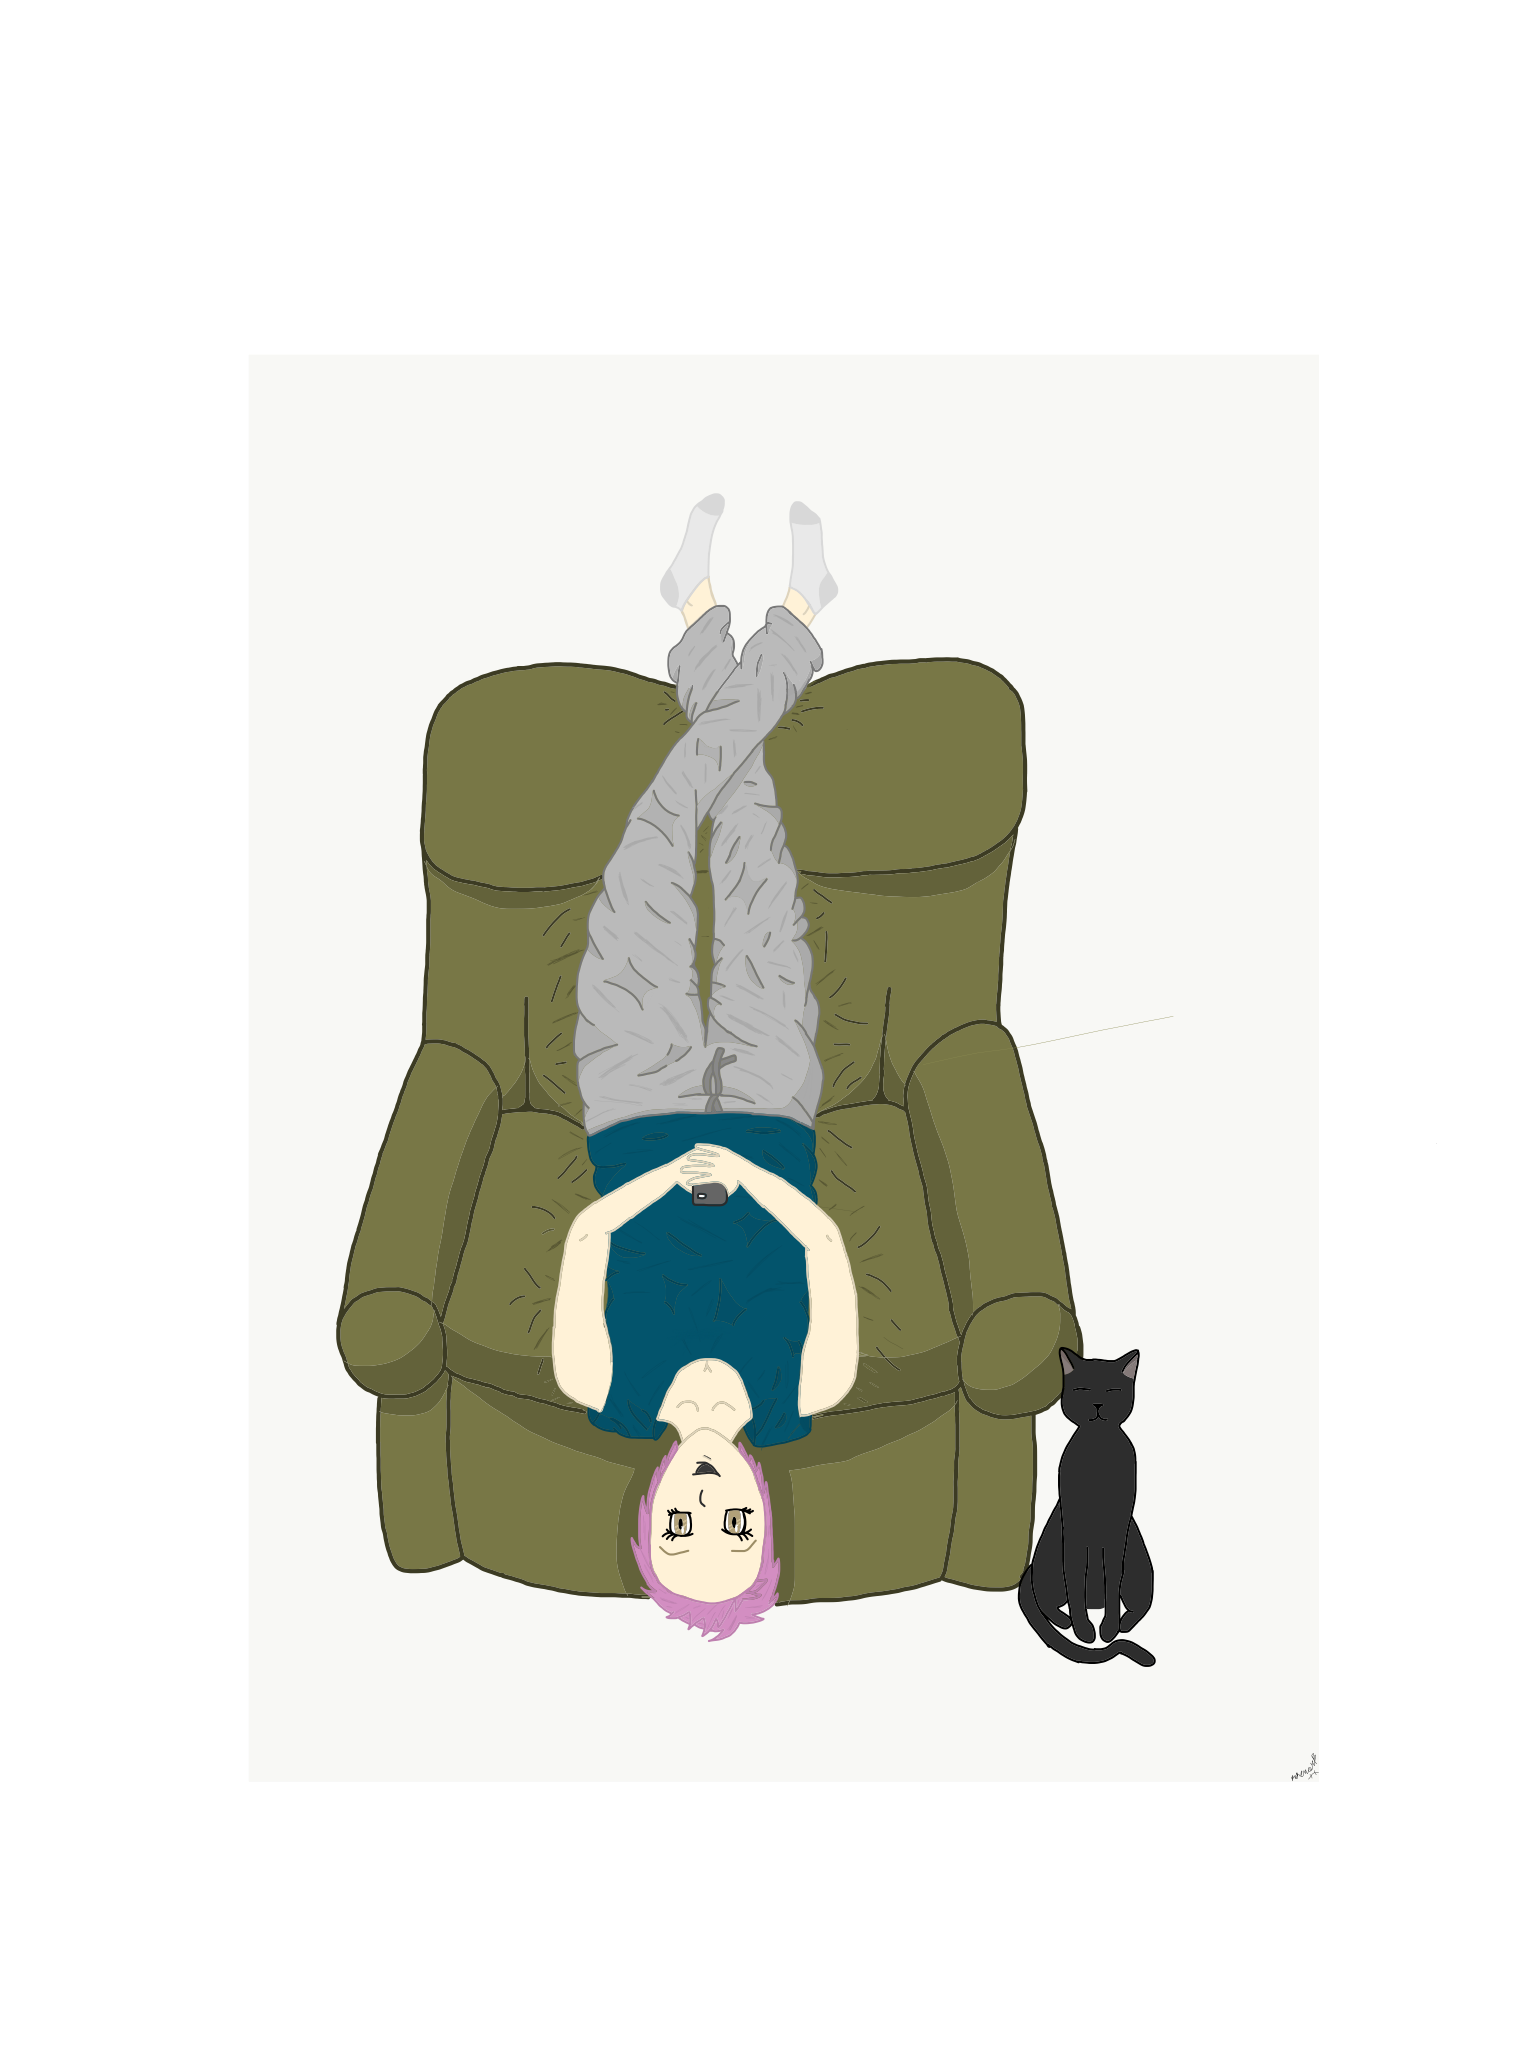 Furniture clipart adobe illustrator. Made with draw get